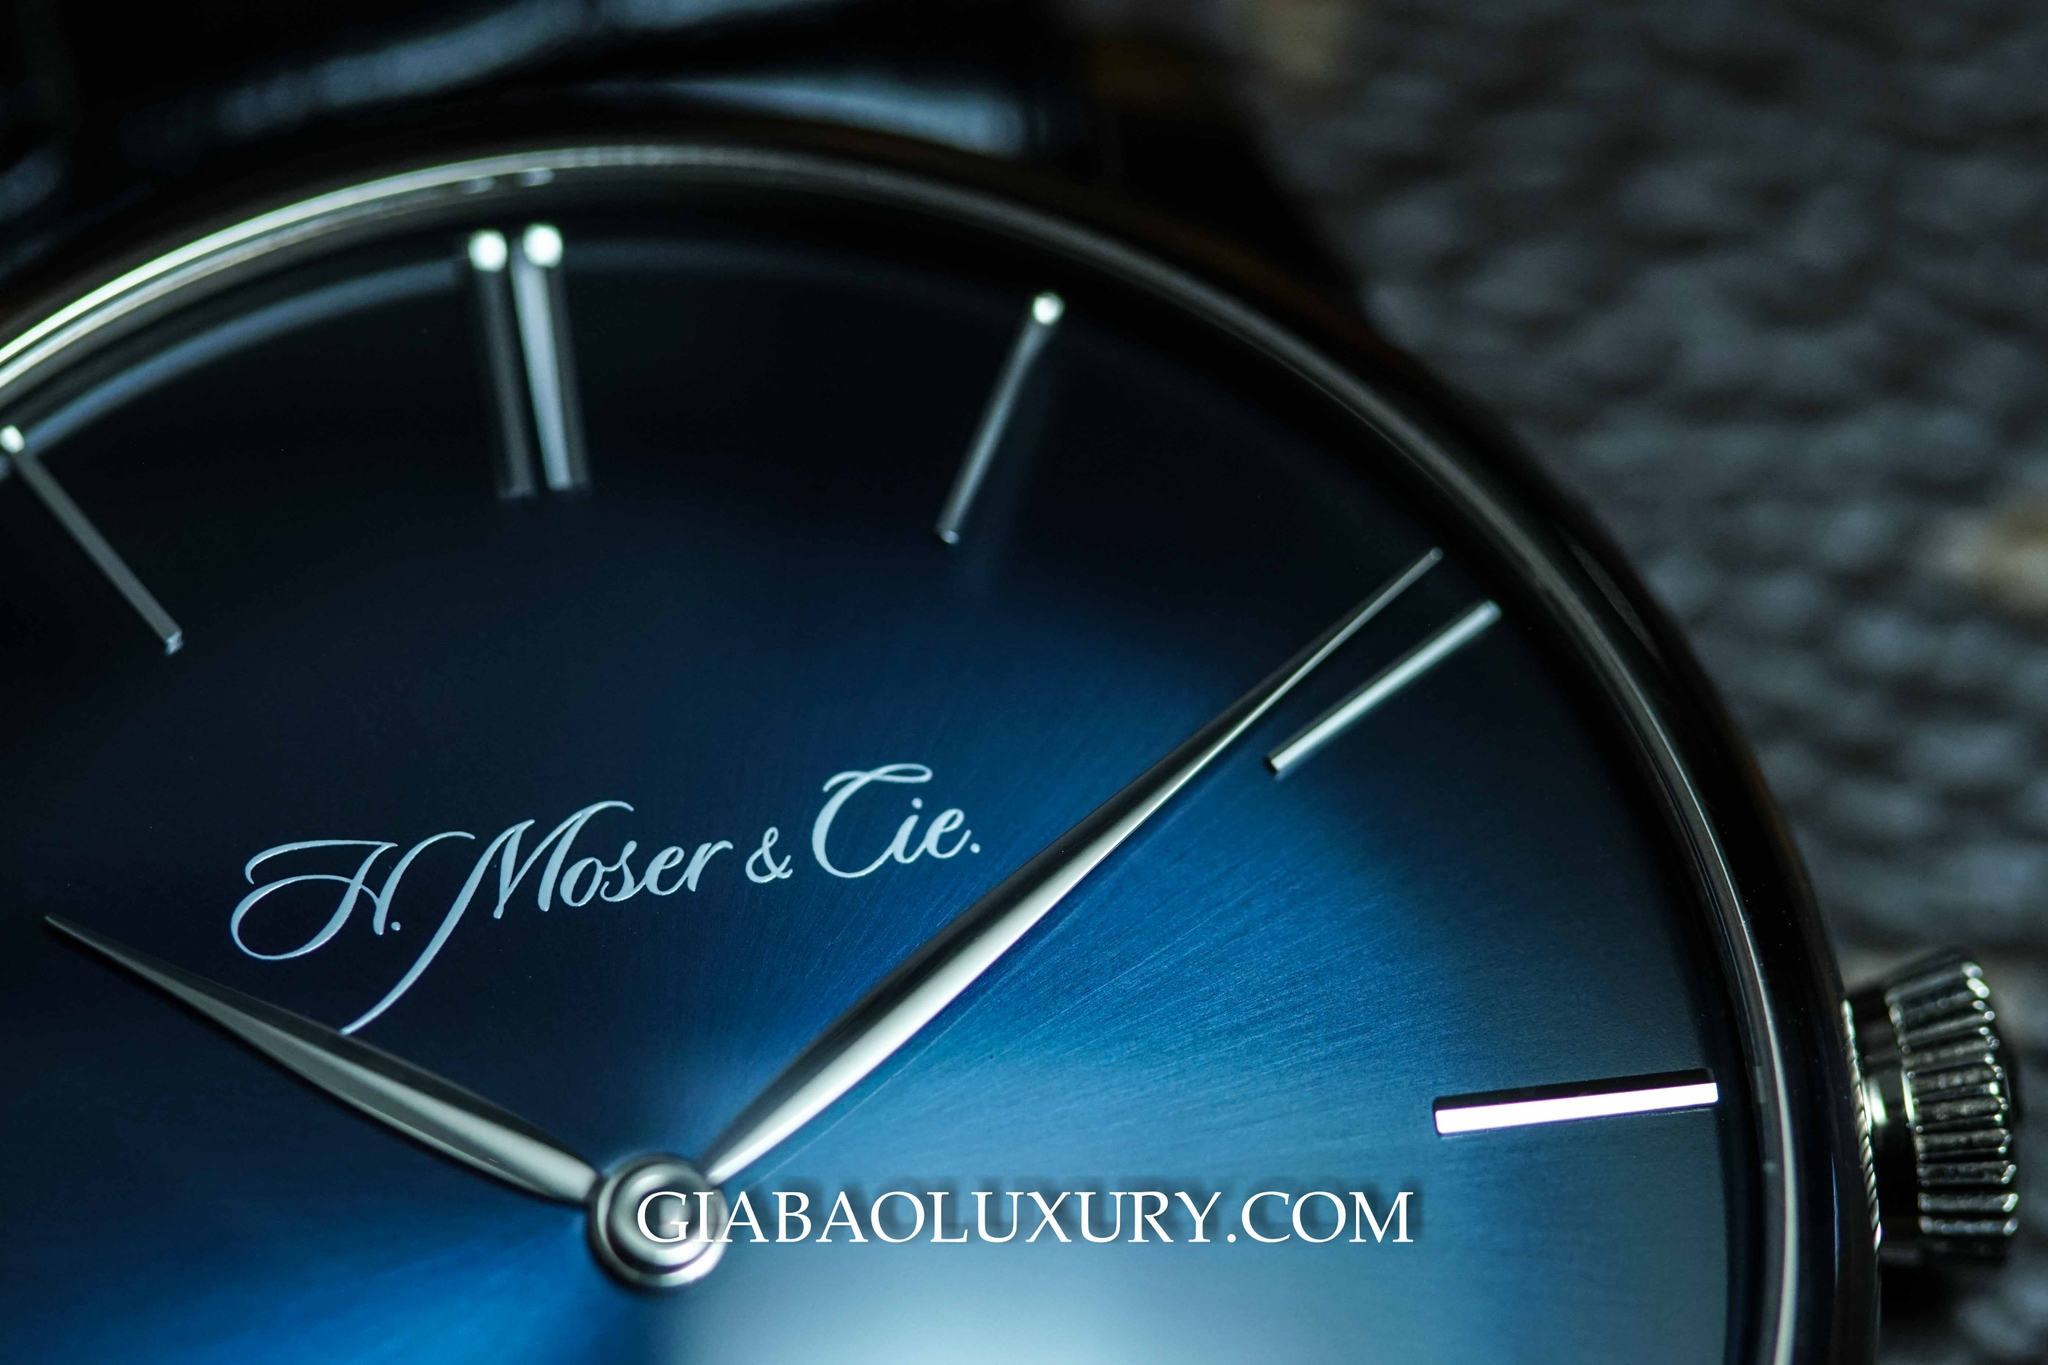 Review Chi Tiết Chiếc Đồng Hồ H. Moser & Cie Venturer Rolls Royce Small Seconds